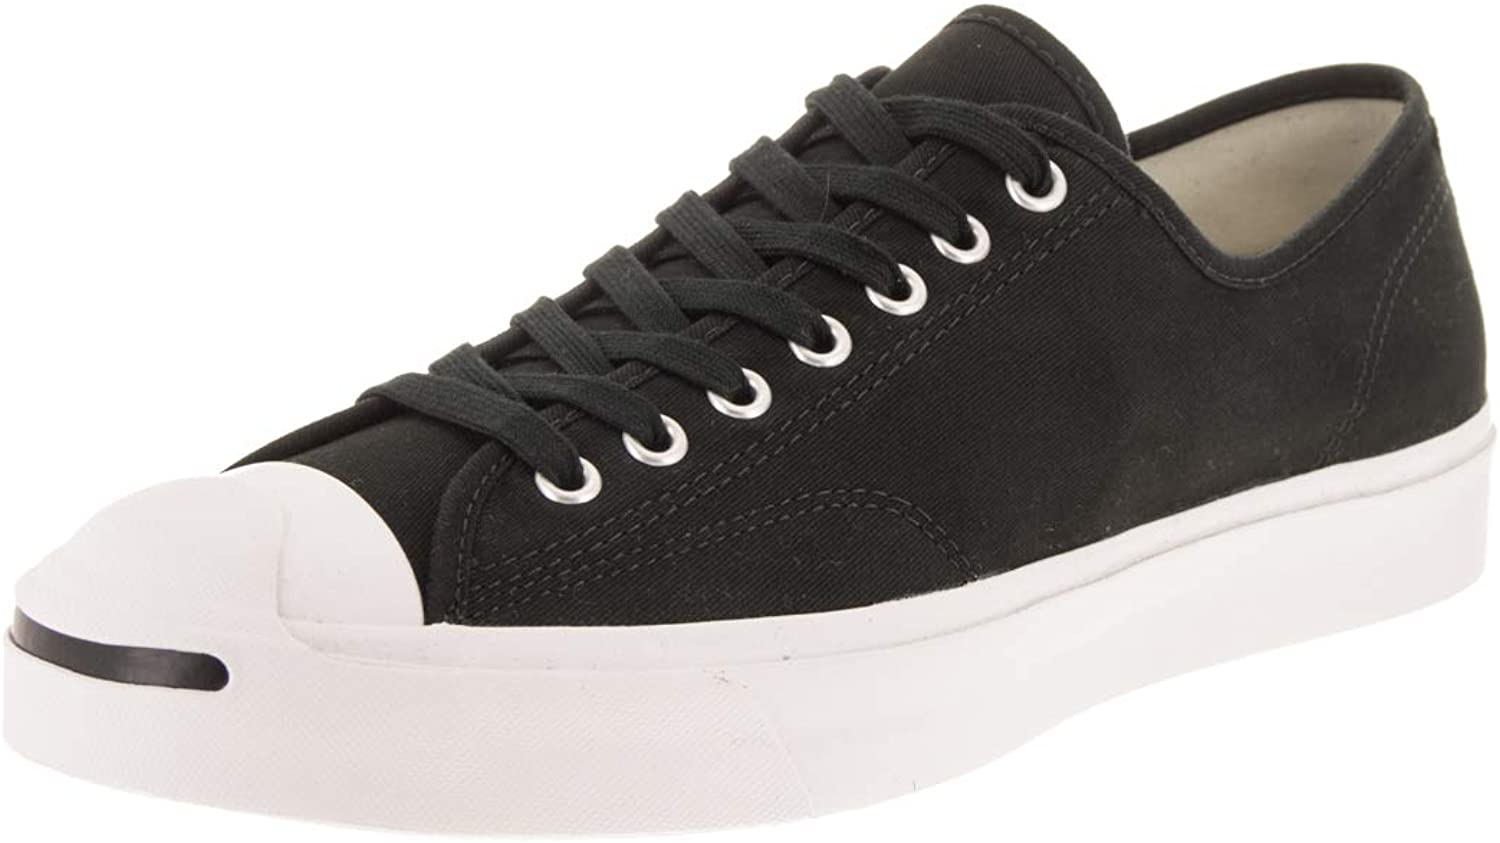 Converse Unisex Jack Purcell Ox Casual shoes